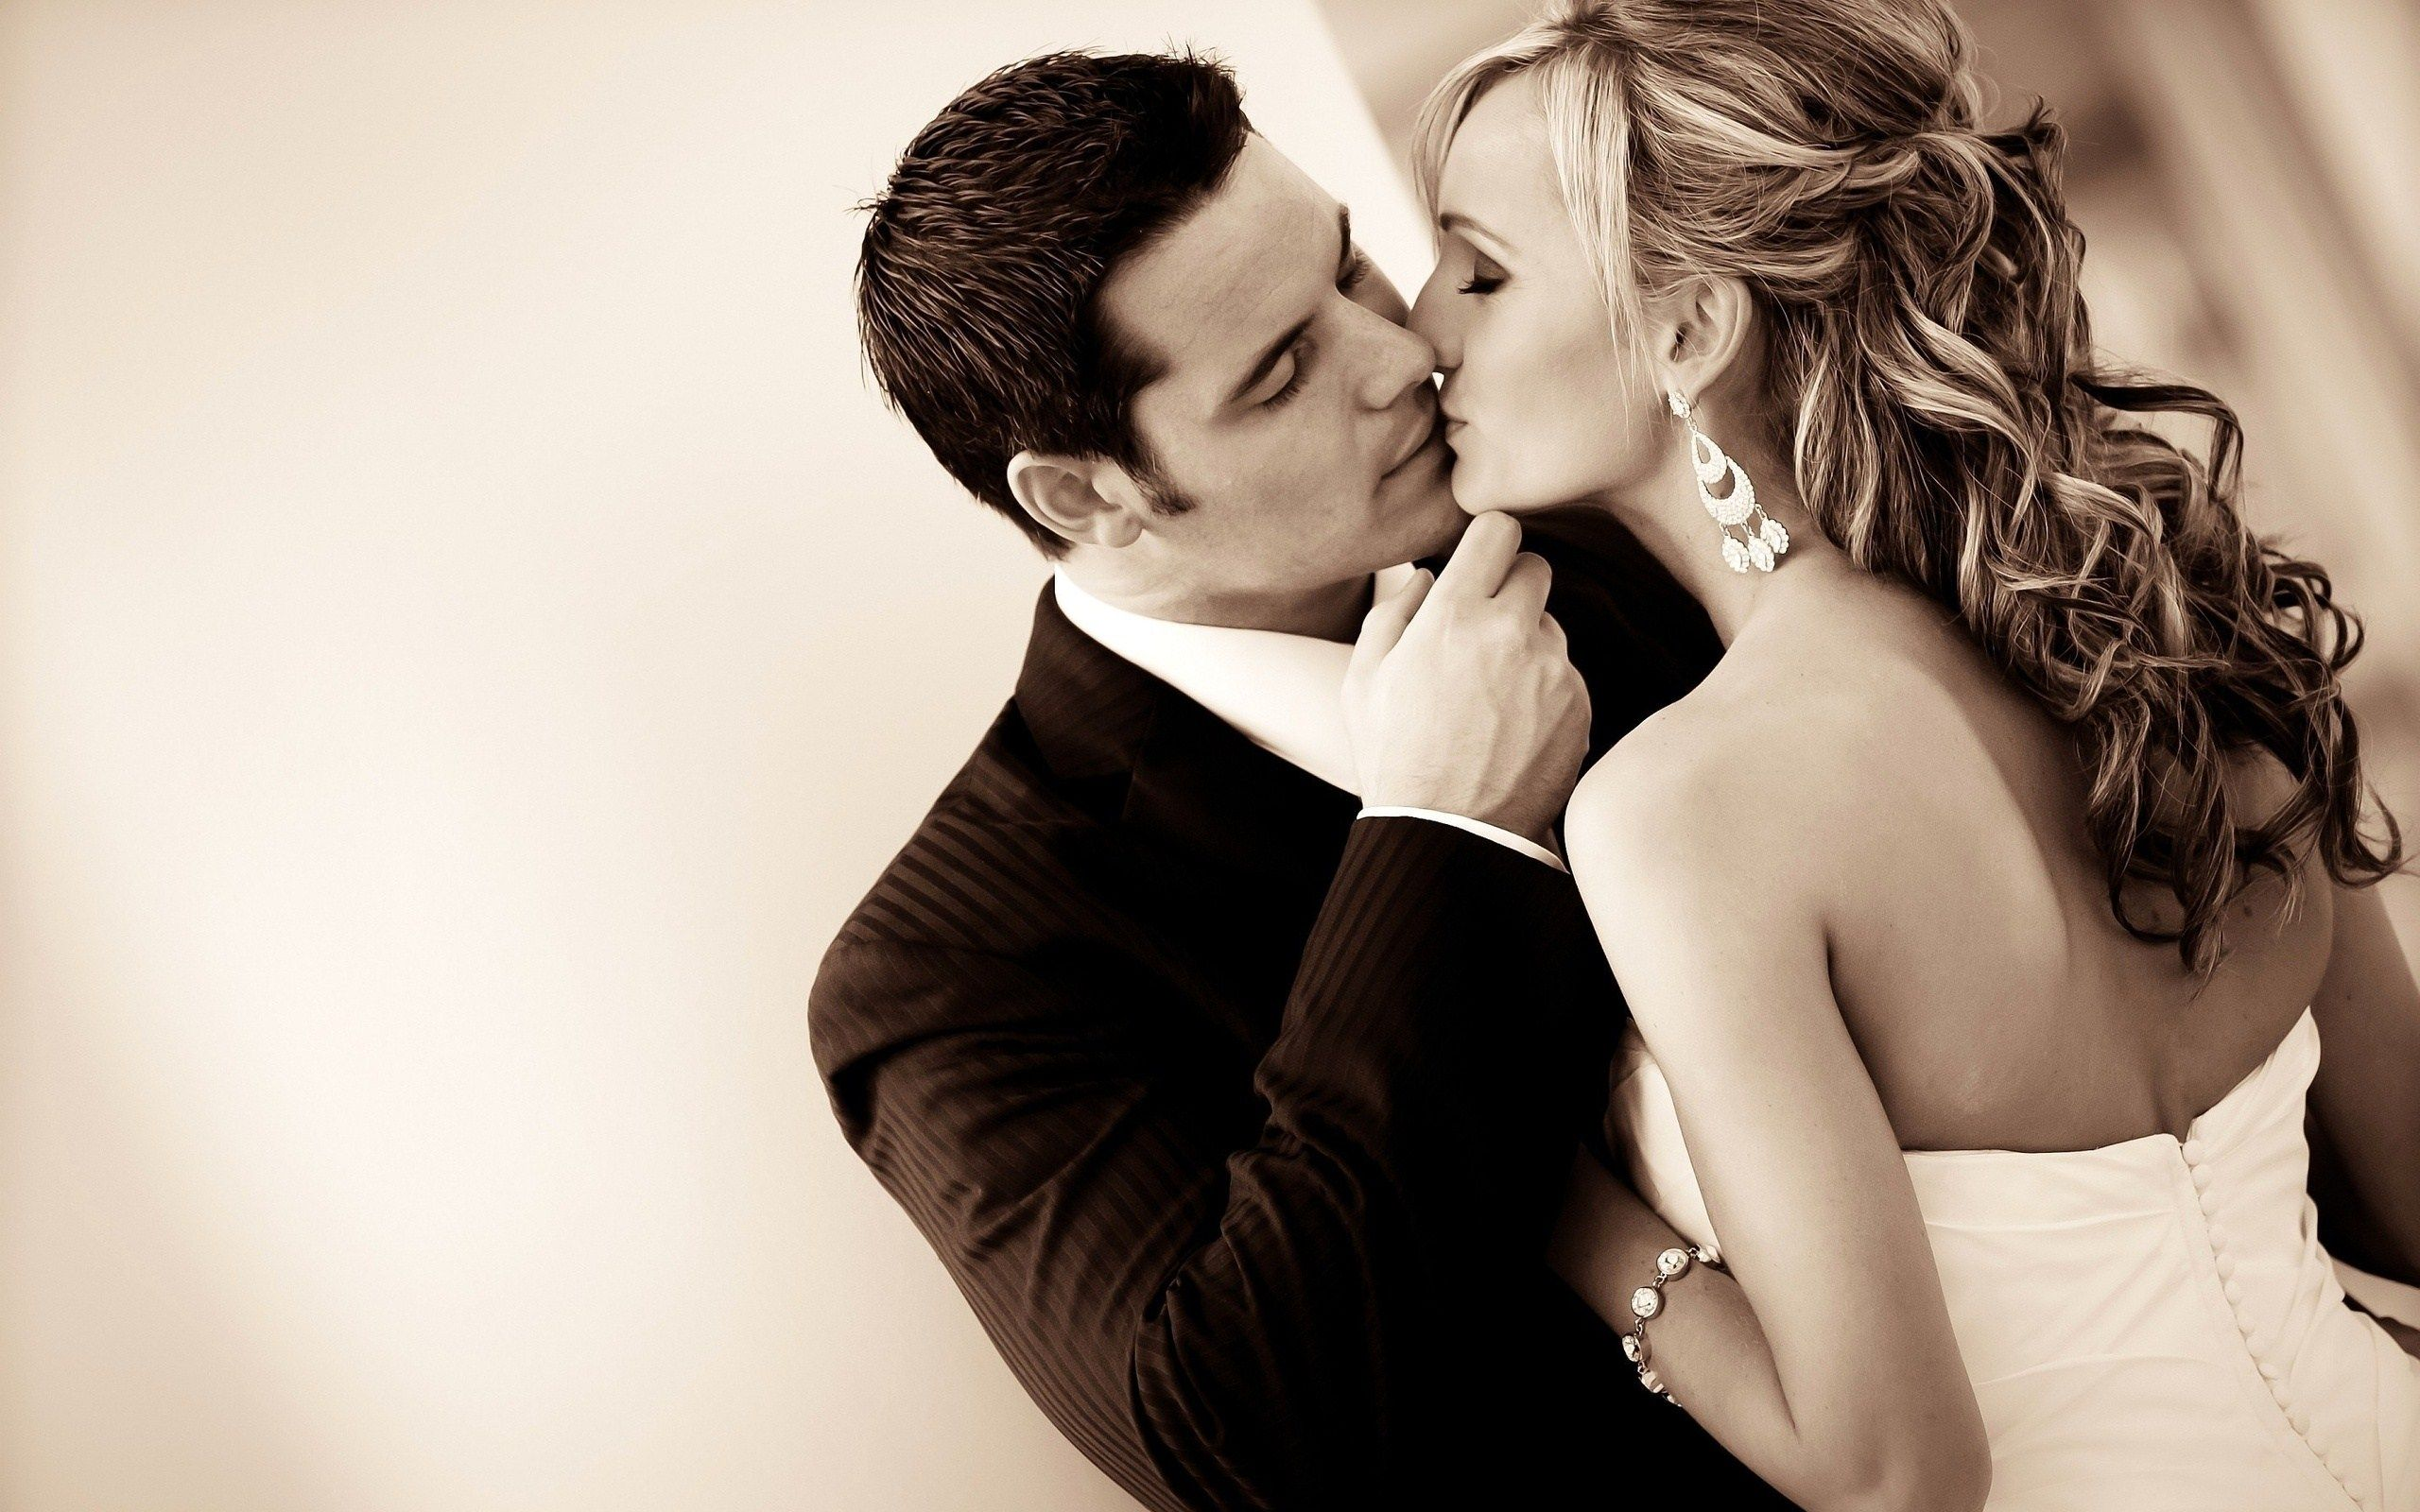 Couple Kissing Hd Wallpapers  Free Art Wallpapers -3047